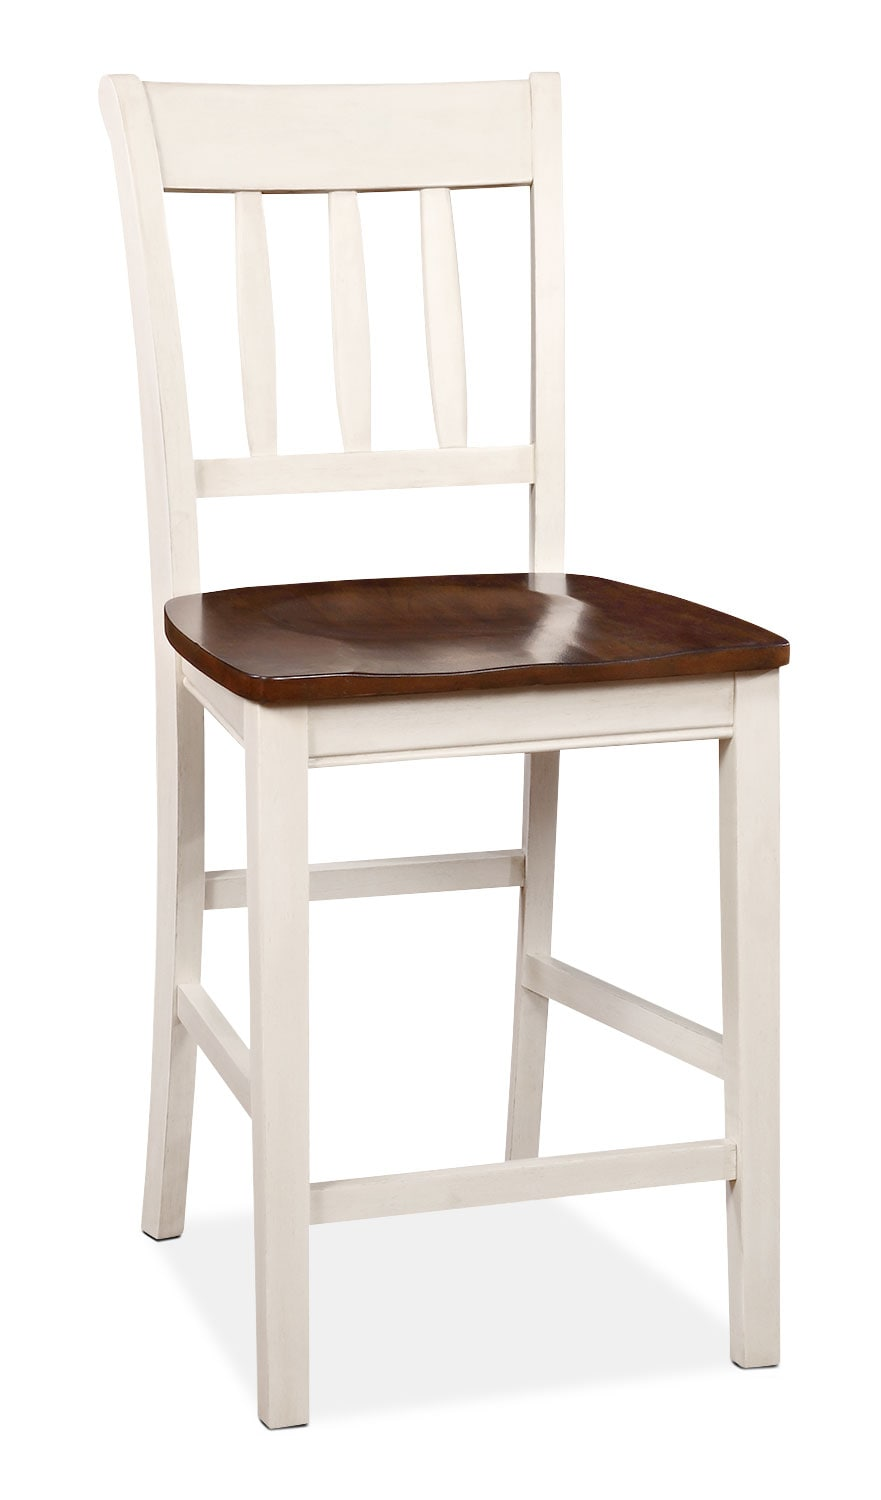 Nyla Counter-Height Dining Chair – Antique White and Cherry